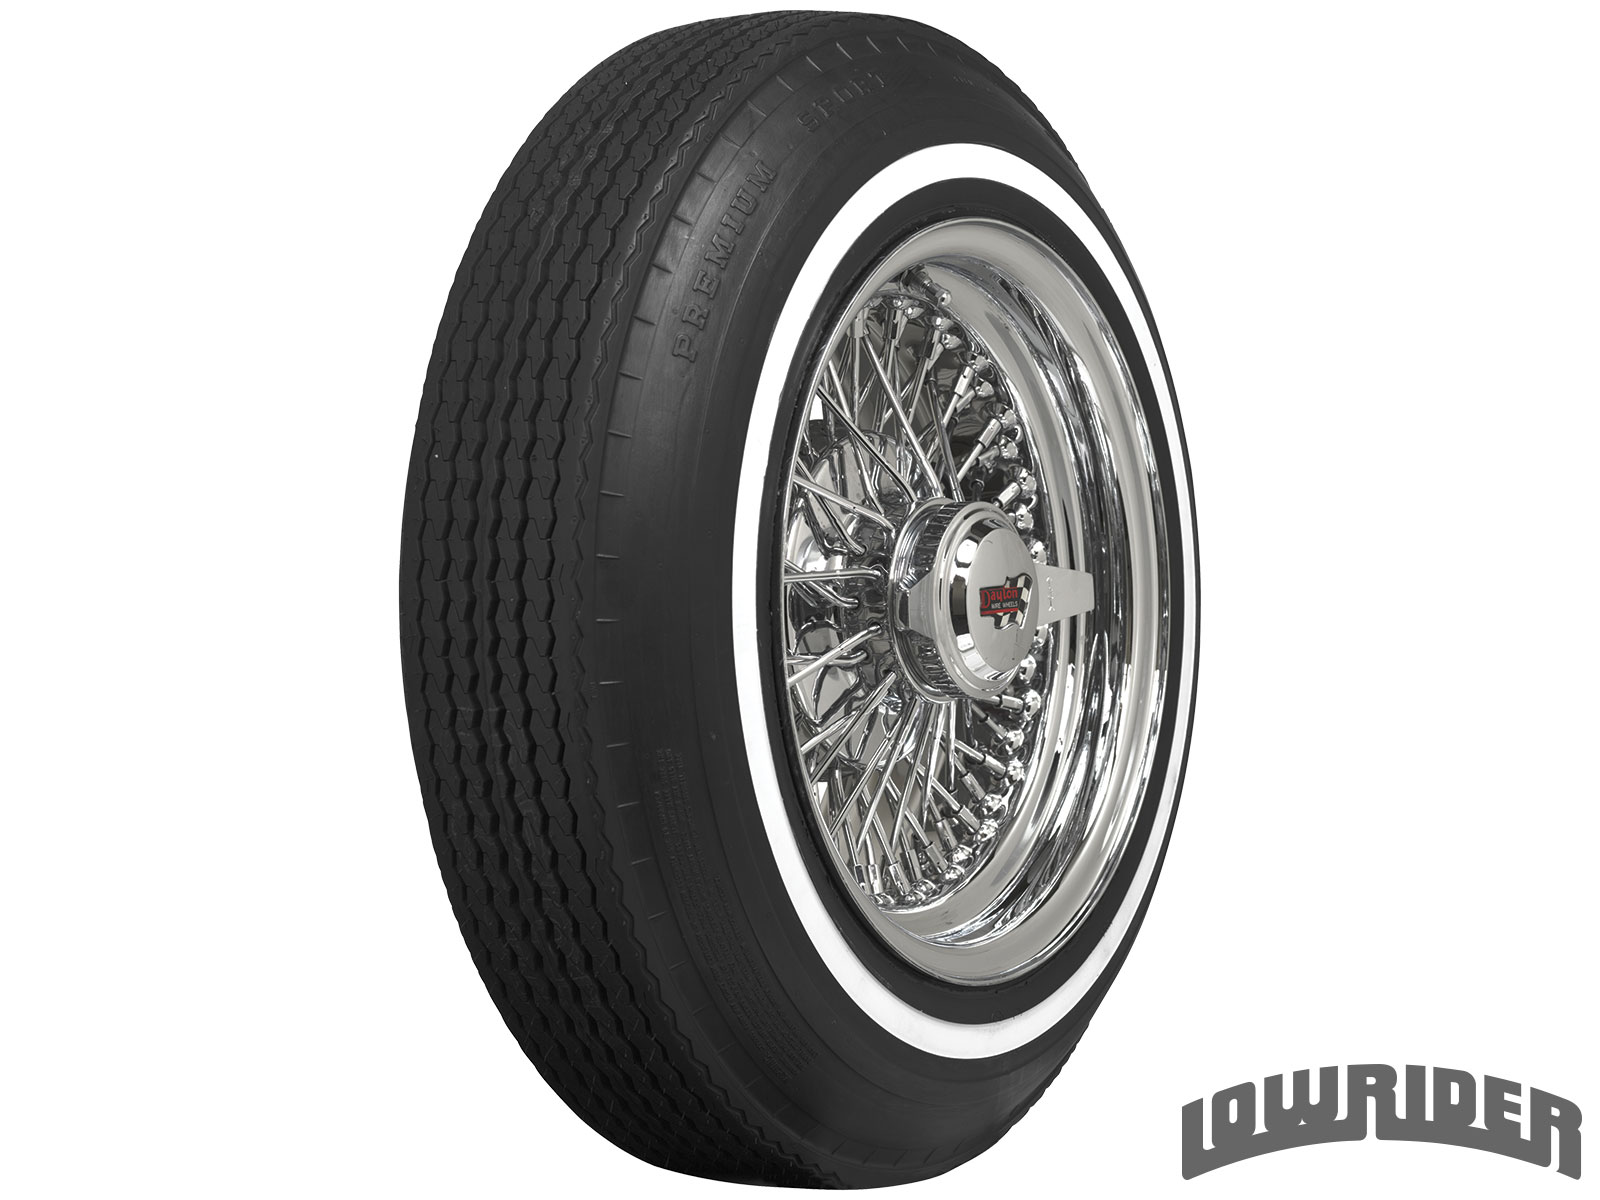 <center><strong>Lowrider Premium Sport Whitewall</strong></center>